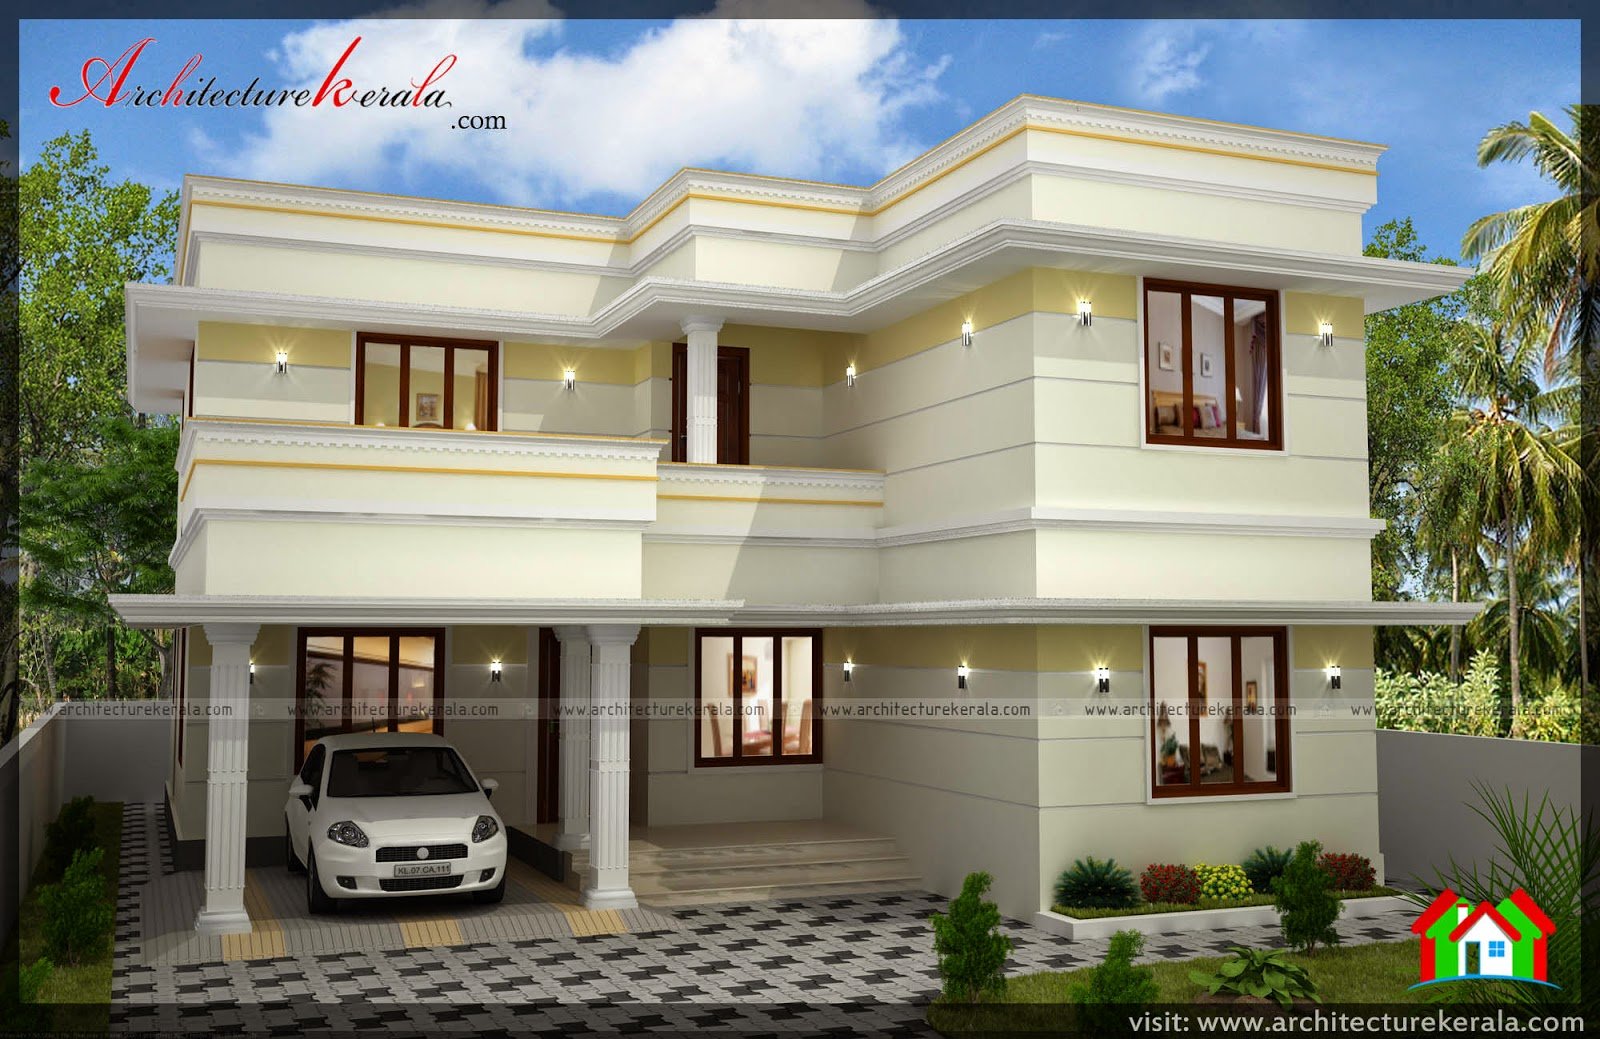 THREE BEDROOM TWO STOREY HOUSE PLAN. THREE BEDROOM TWO STOREY HOUSE PLAN   ARCHITECTURE KERALA